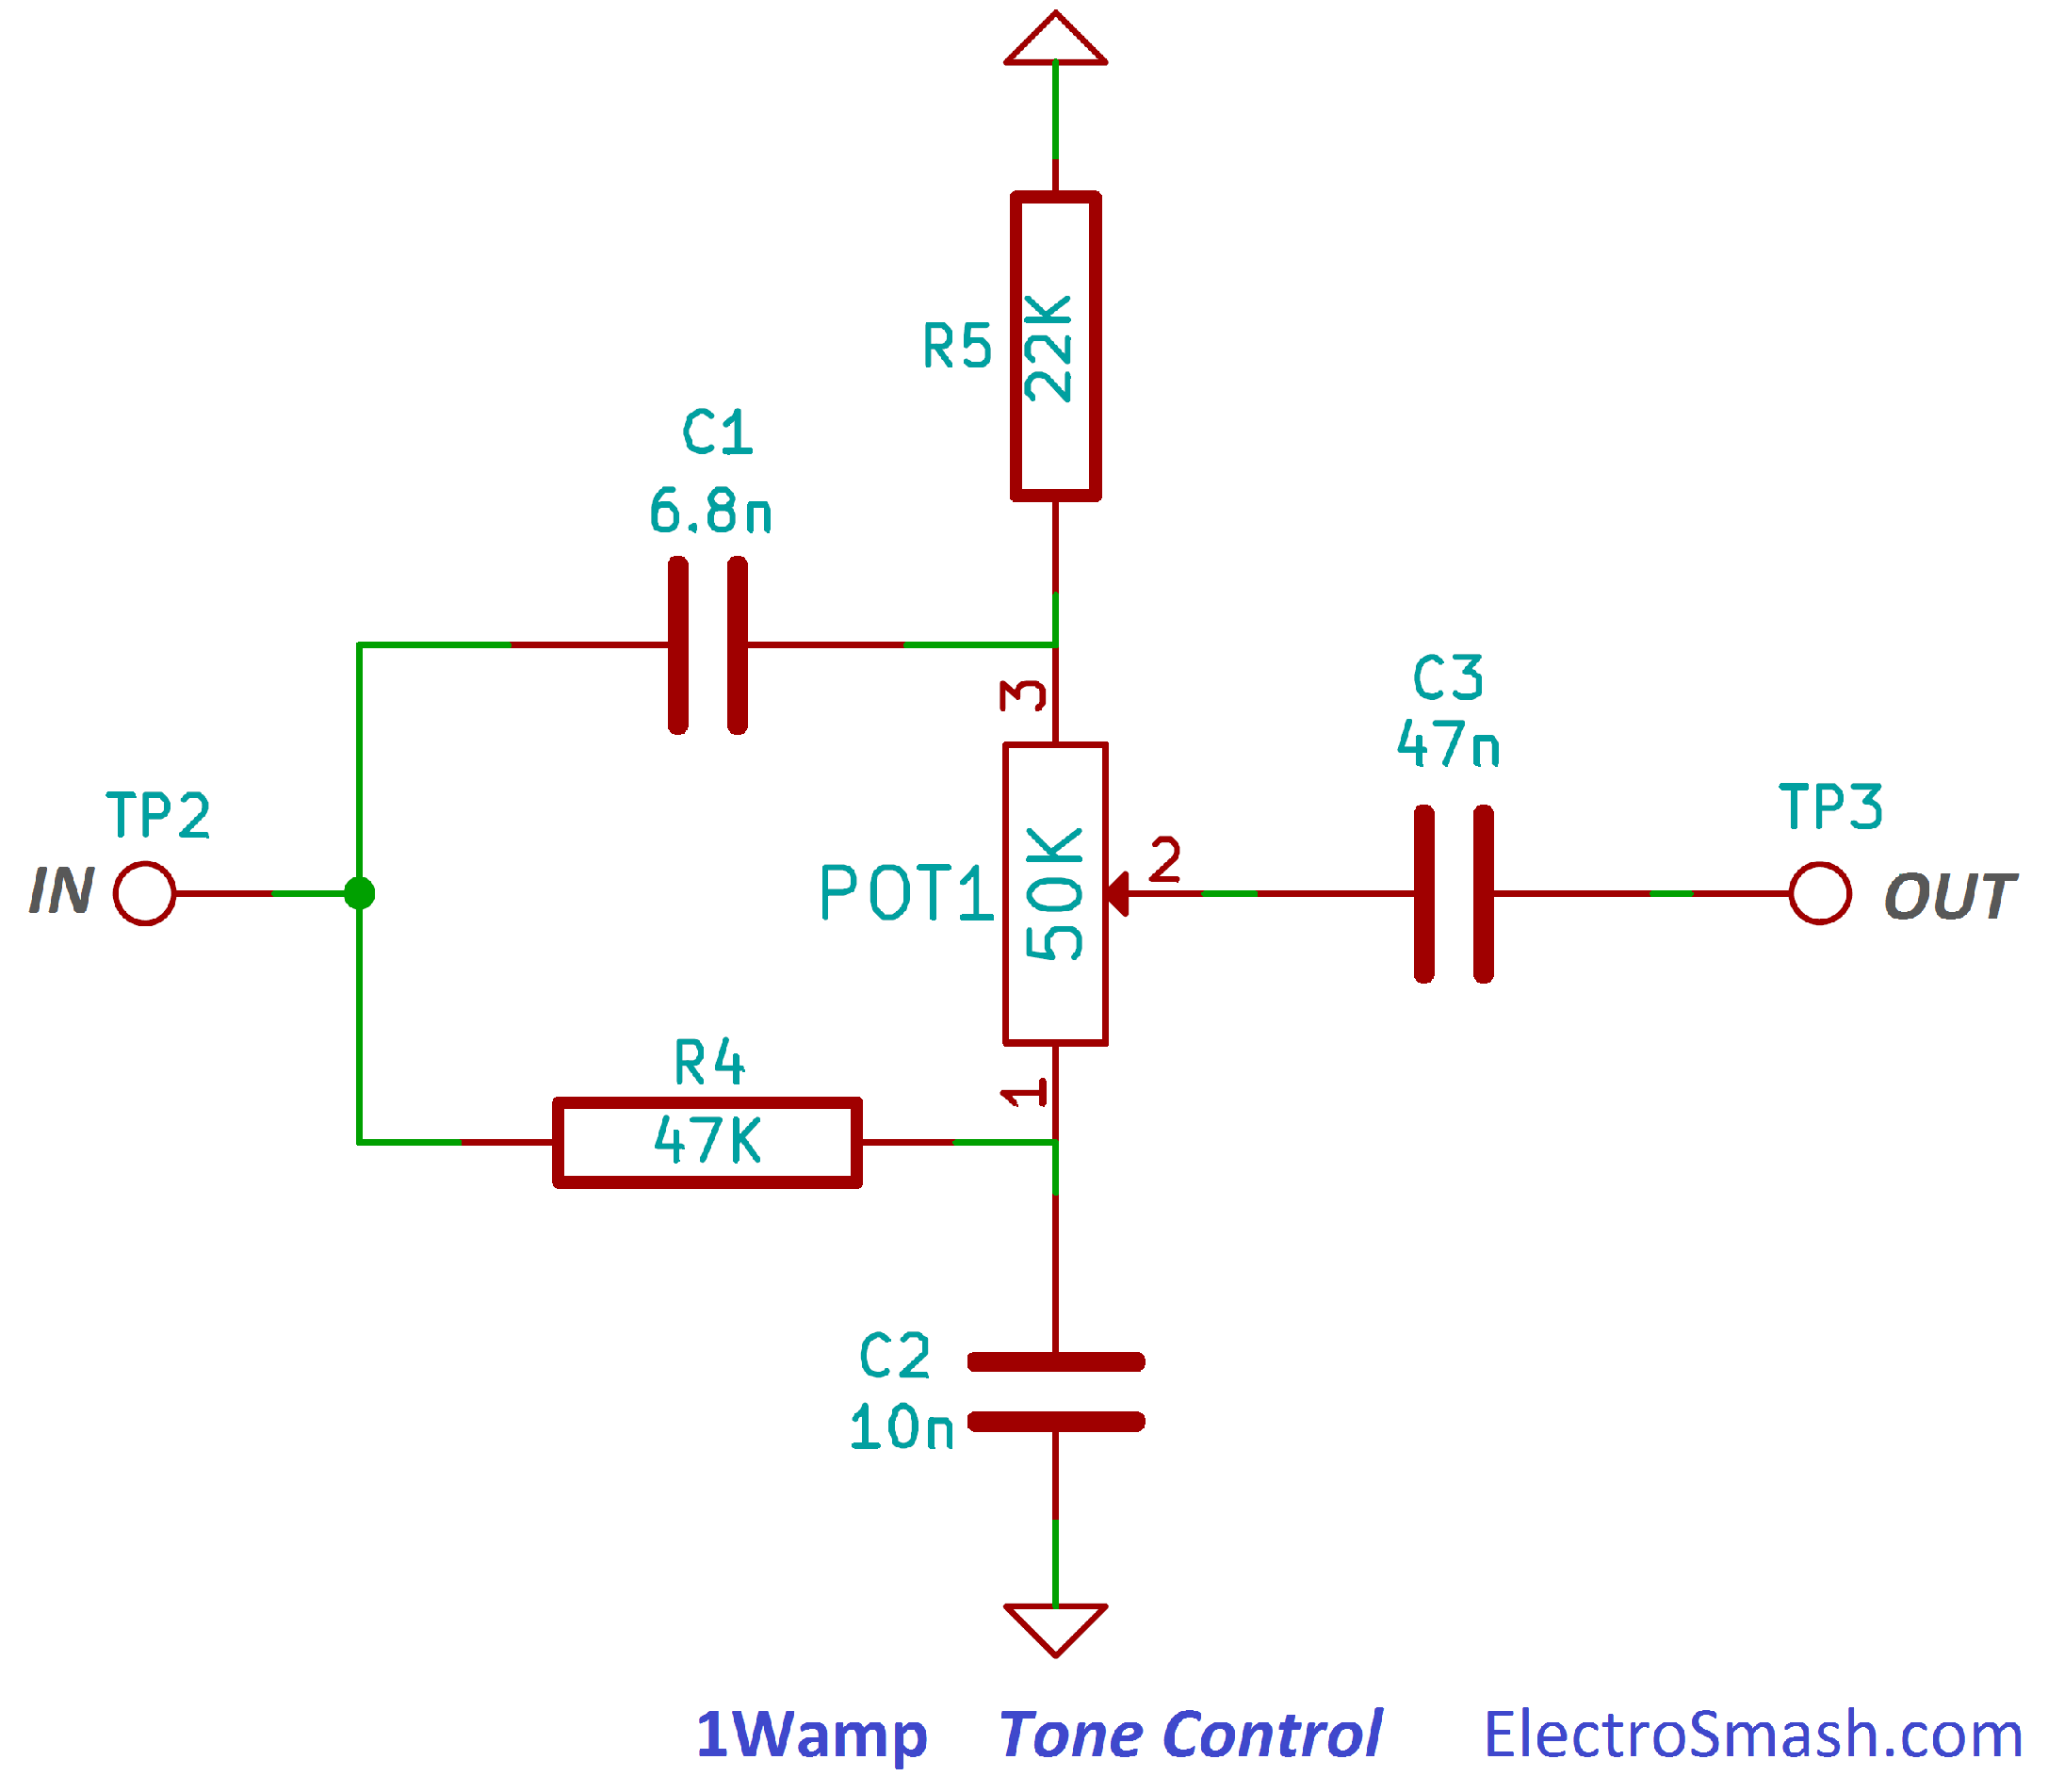 Wiring Diagram For Guitar Tone Control : Electrosmash wamp electroc guitar amplifier